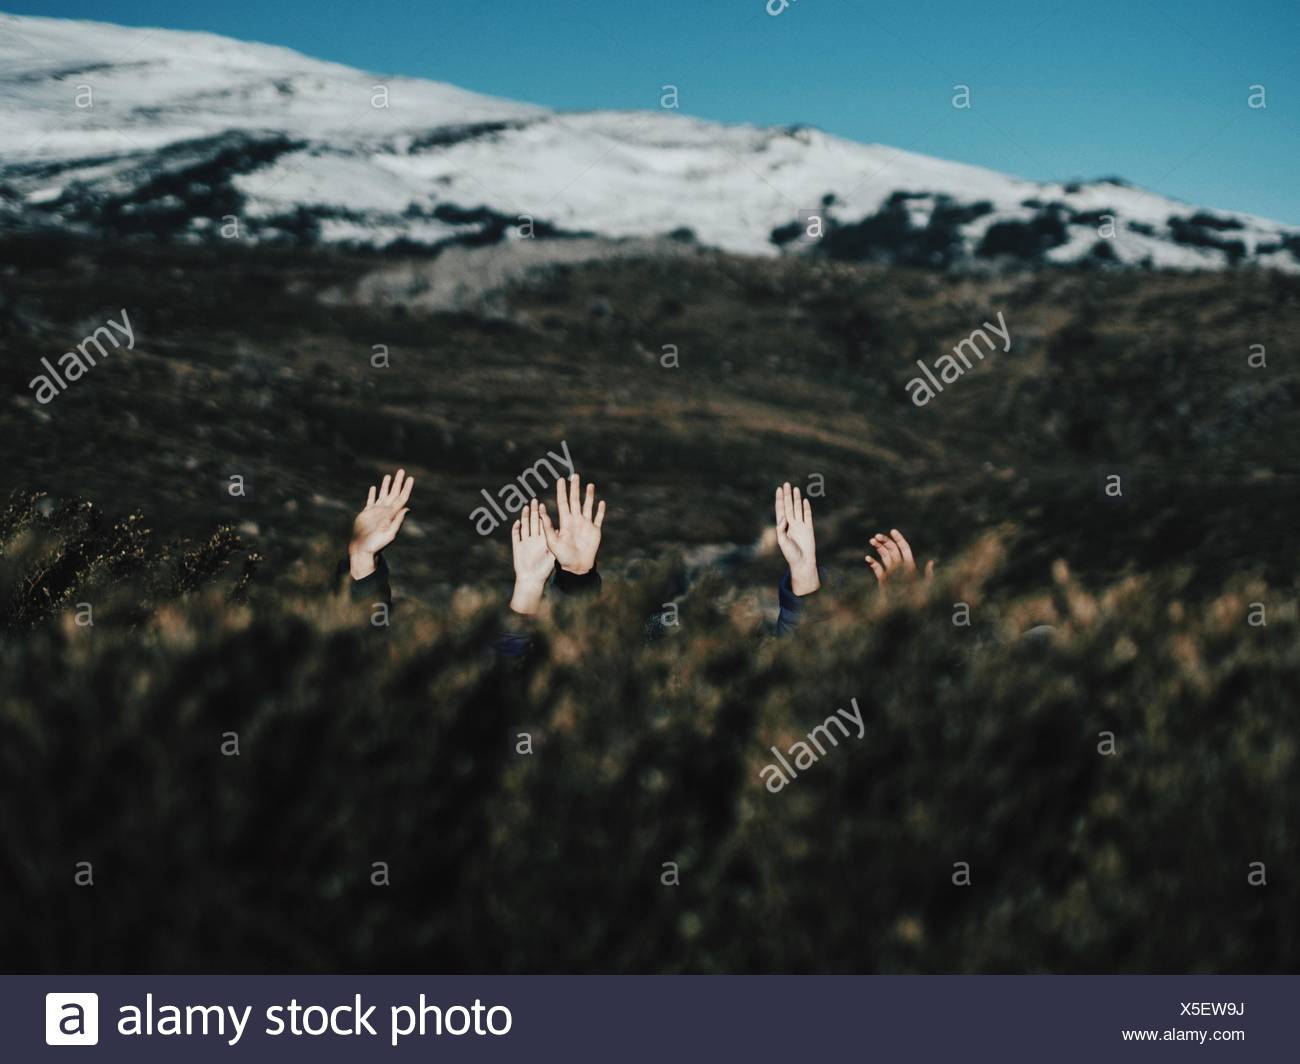 Hands Coming Out From Field Against Snowcapped Mountains - Stock Image